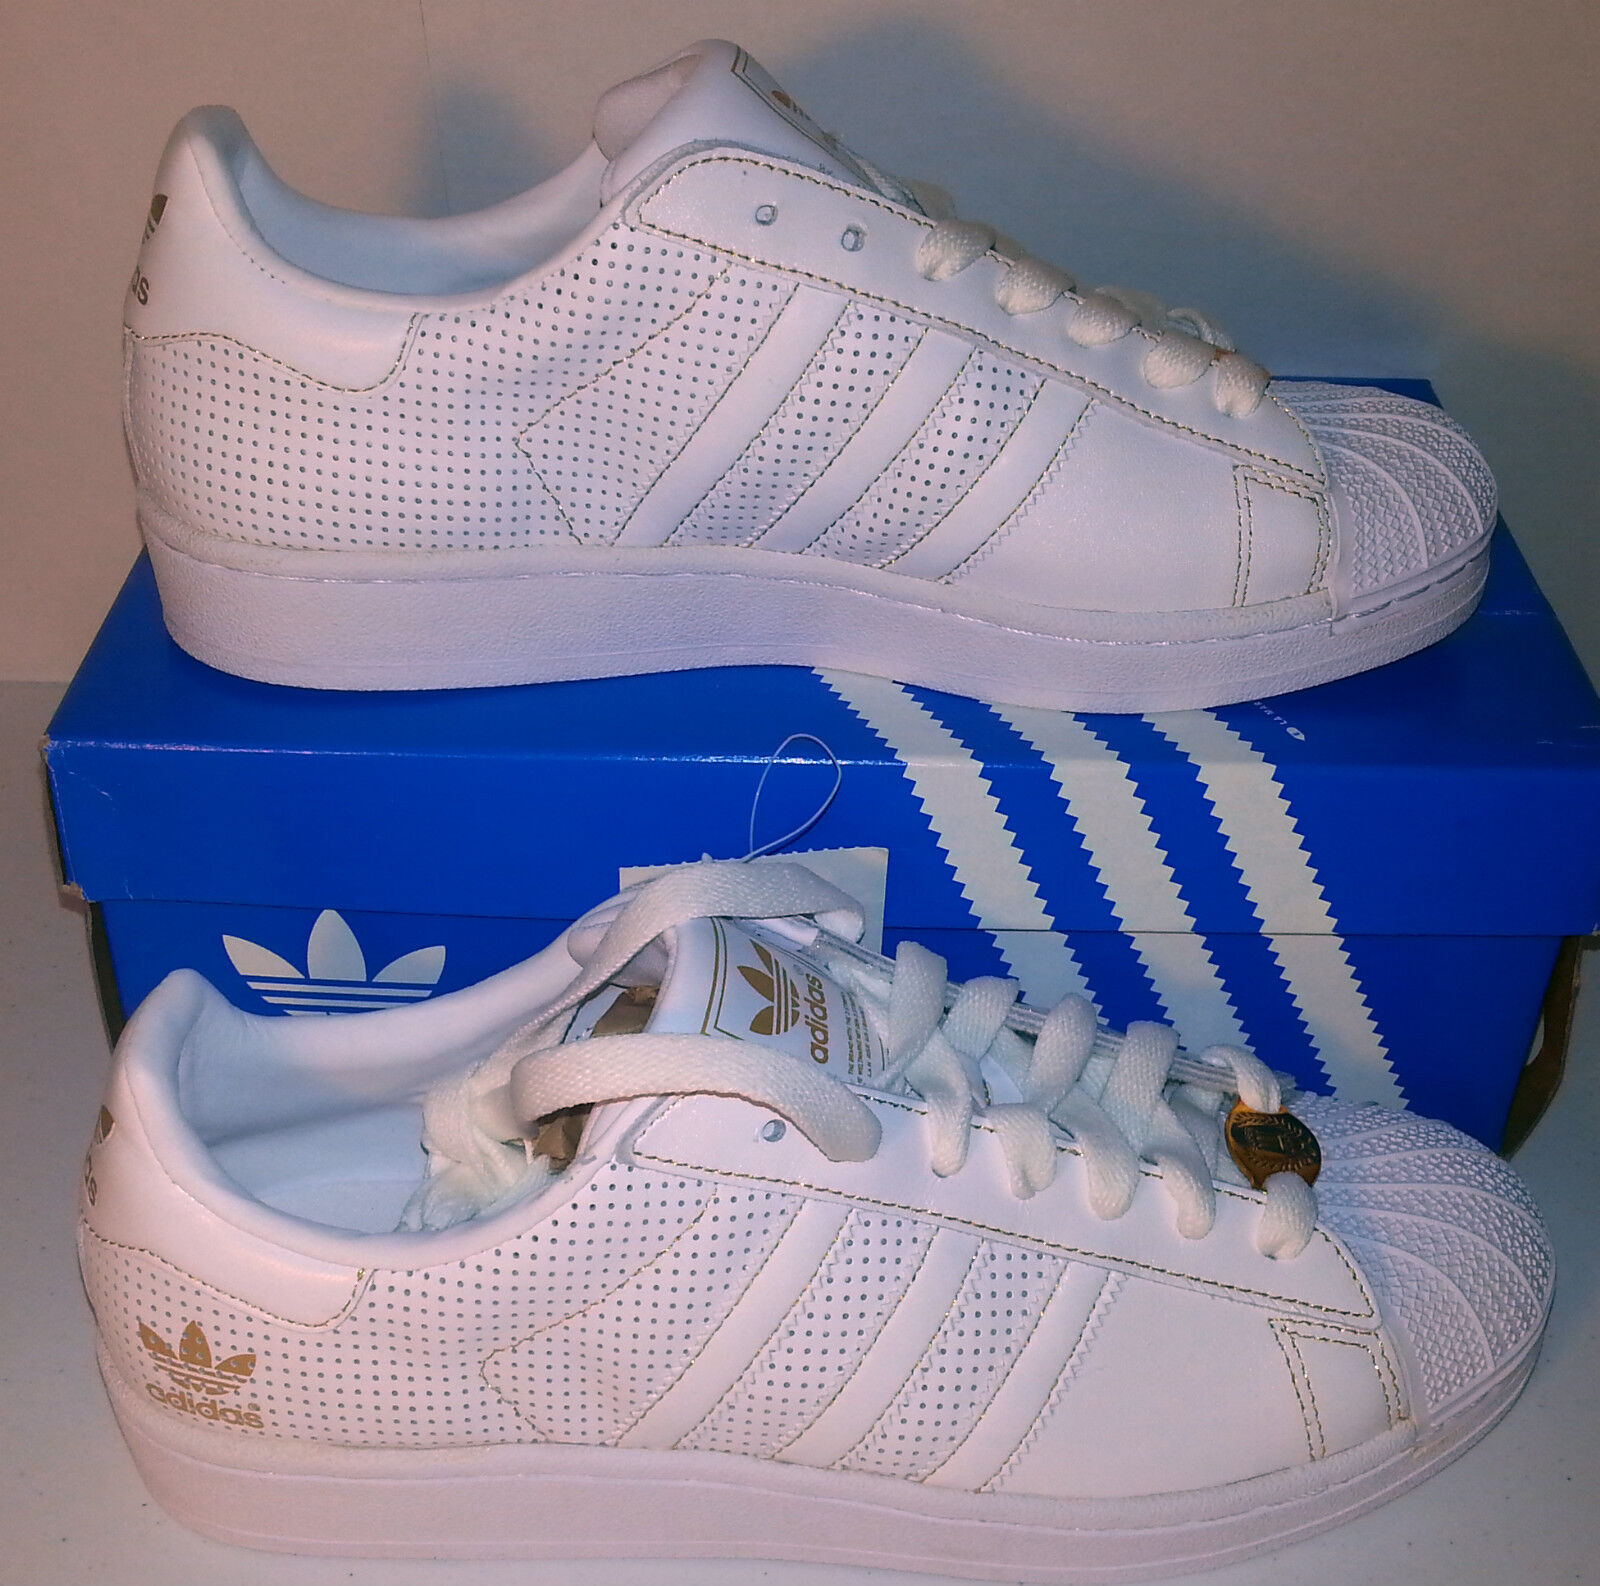 ADIDAS SUPERSTAR TL WHITE/GOLD mens SHELLTOES SHOES 8